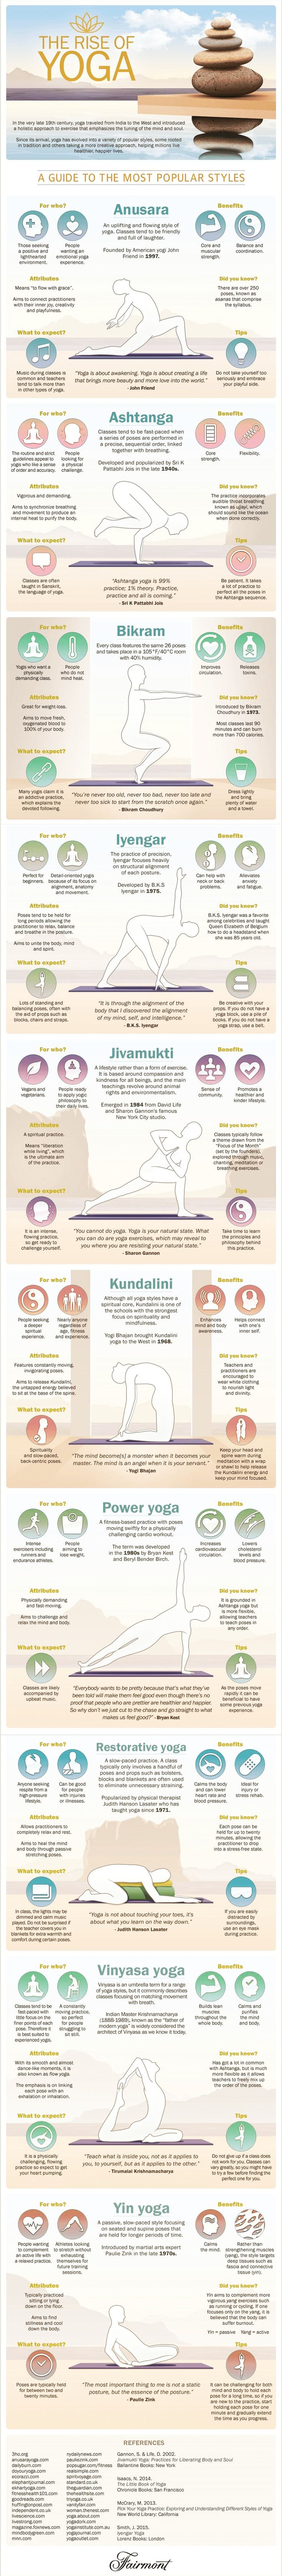 Most Popular Yoga Styles - Health Infographic. Topic: types of yoga, yogi, exercise, poses, postures, Anusara, Ashtanga, Bikram, Kripalu, Hatha, Iyengar, Kundalini, Jivamukti, Prenatal, Restorative, Sivananda, Viniyoga, Yin, Power yoga.